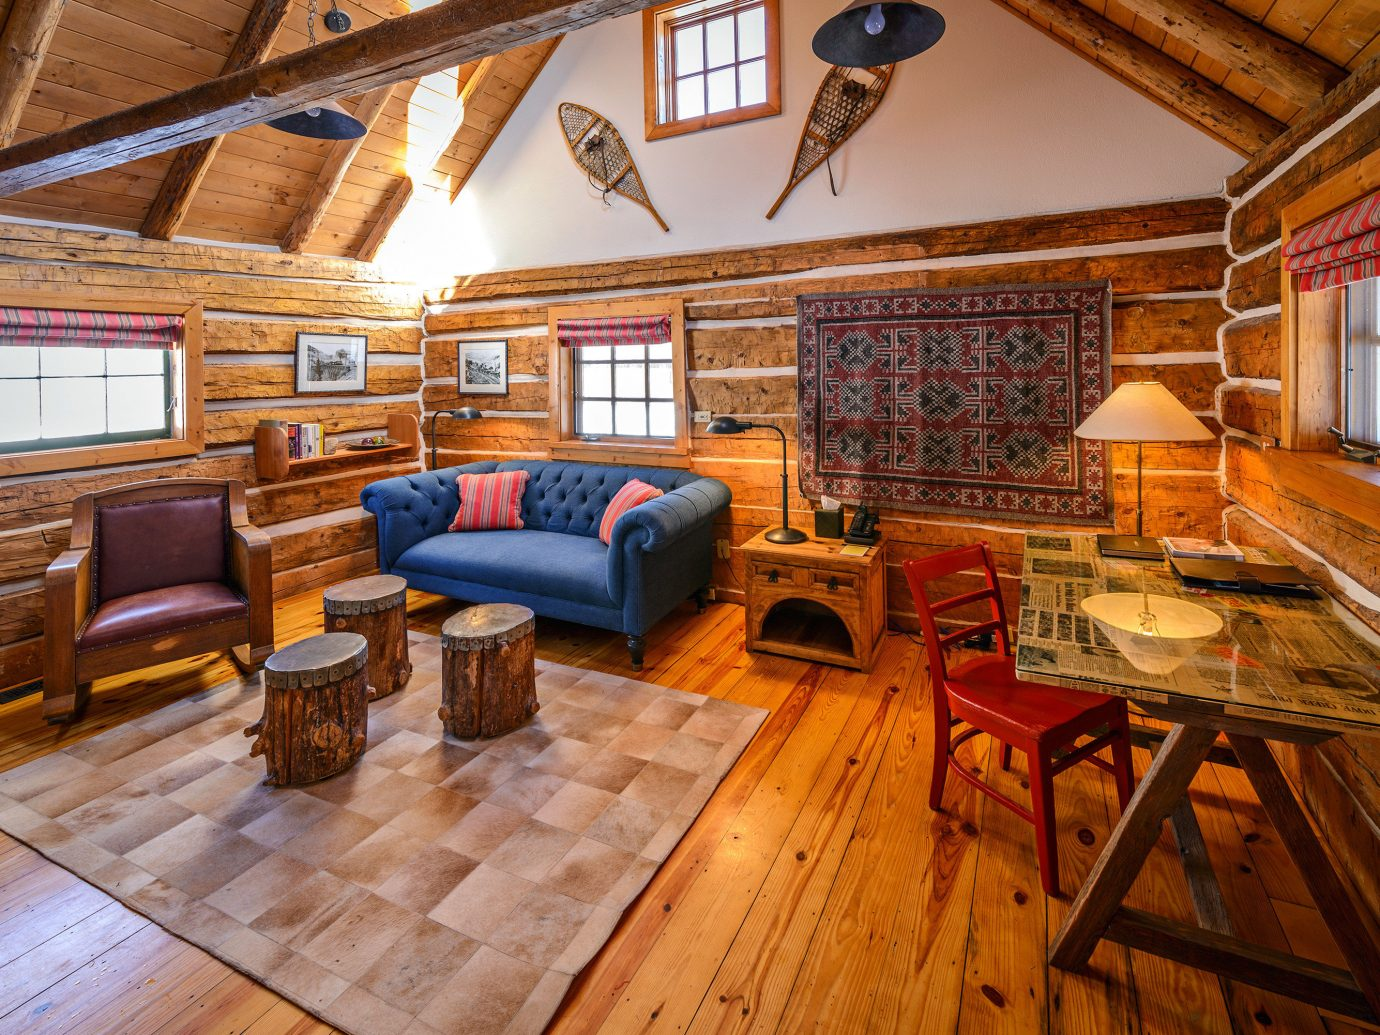 Adventure All-Inclusive Resorts Glamping Hotels Living Romance Rustic floor indoor room property log cabin building recreation room estate ceiling house home cottage hardwood living room wood interior design farmhouse furniture real estate wood flooring